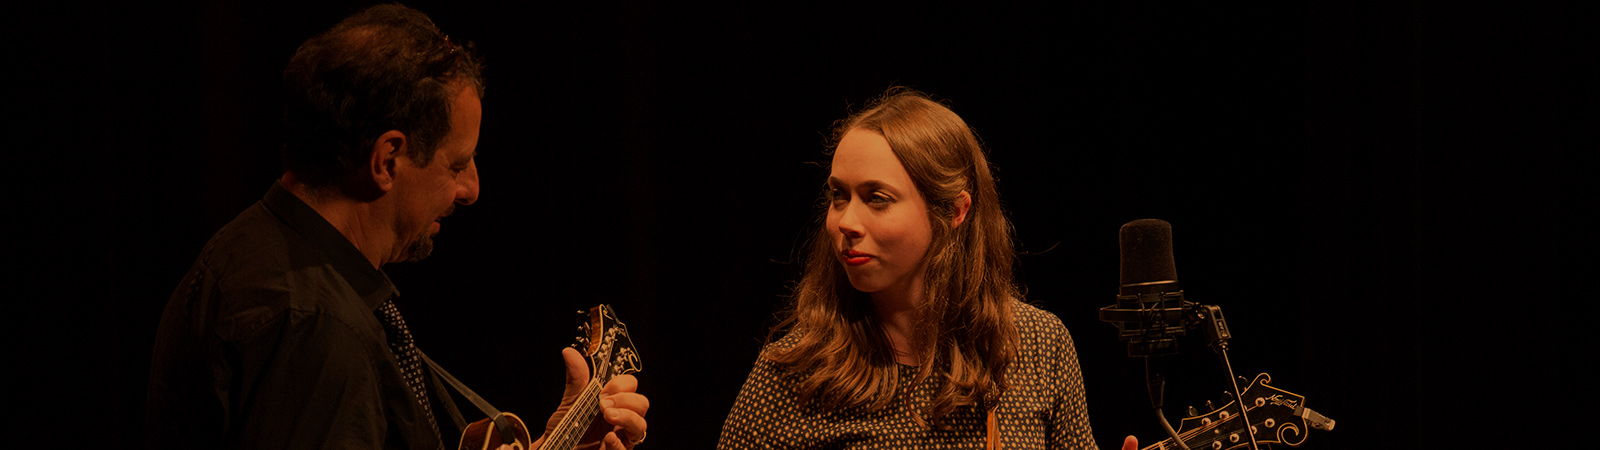 Mike Marshall & Sarah Jarosz - Marshall Mando Summit